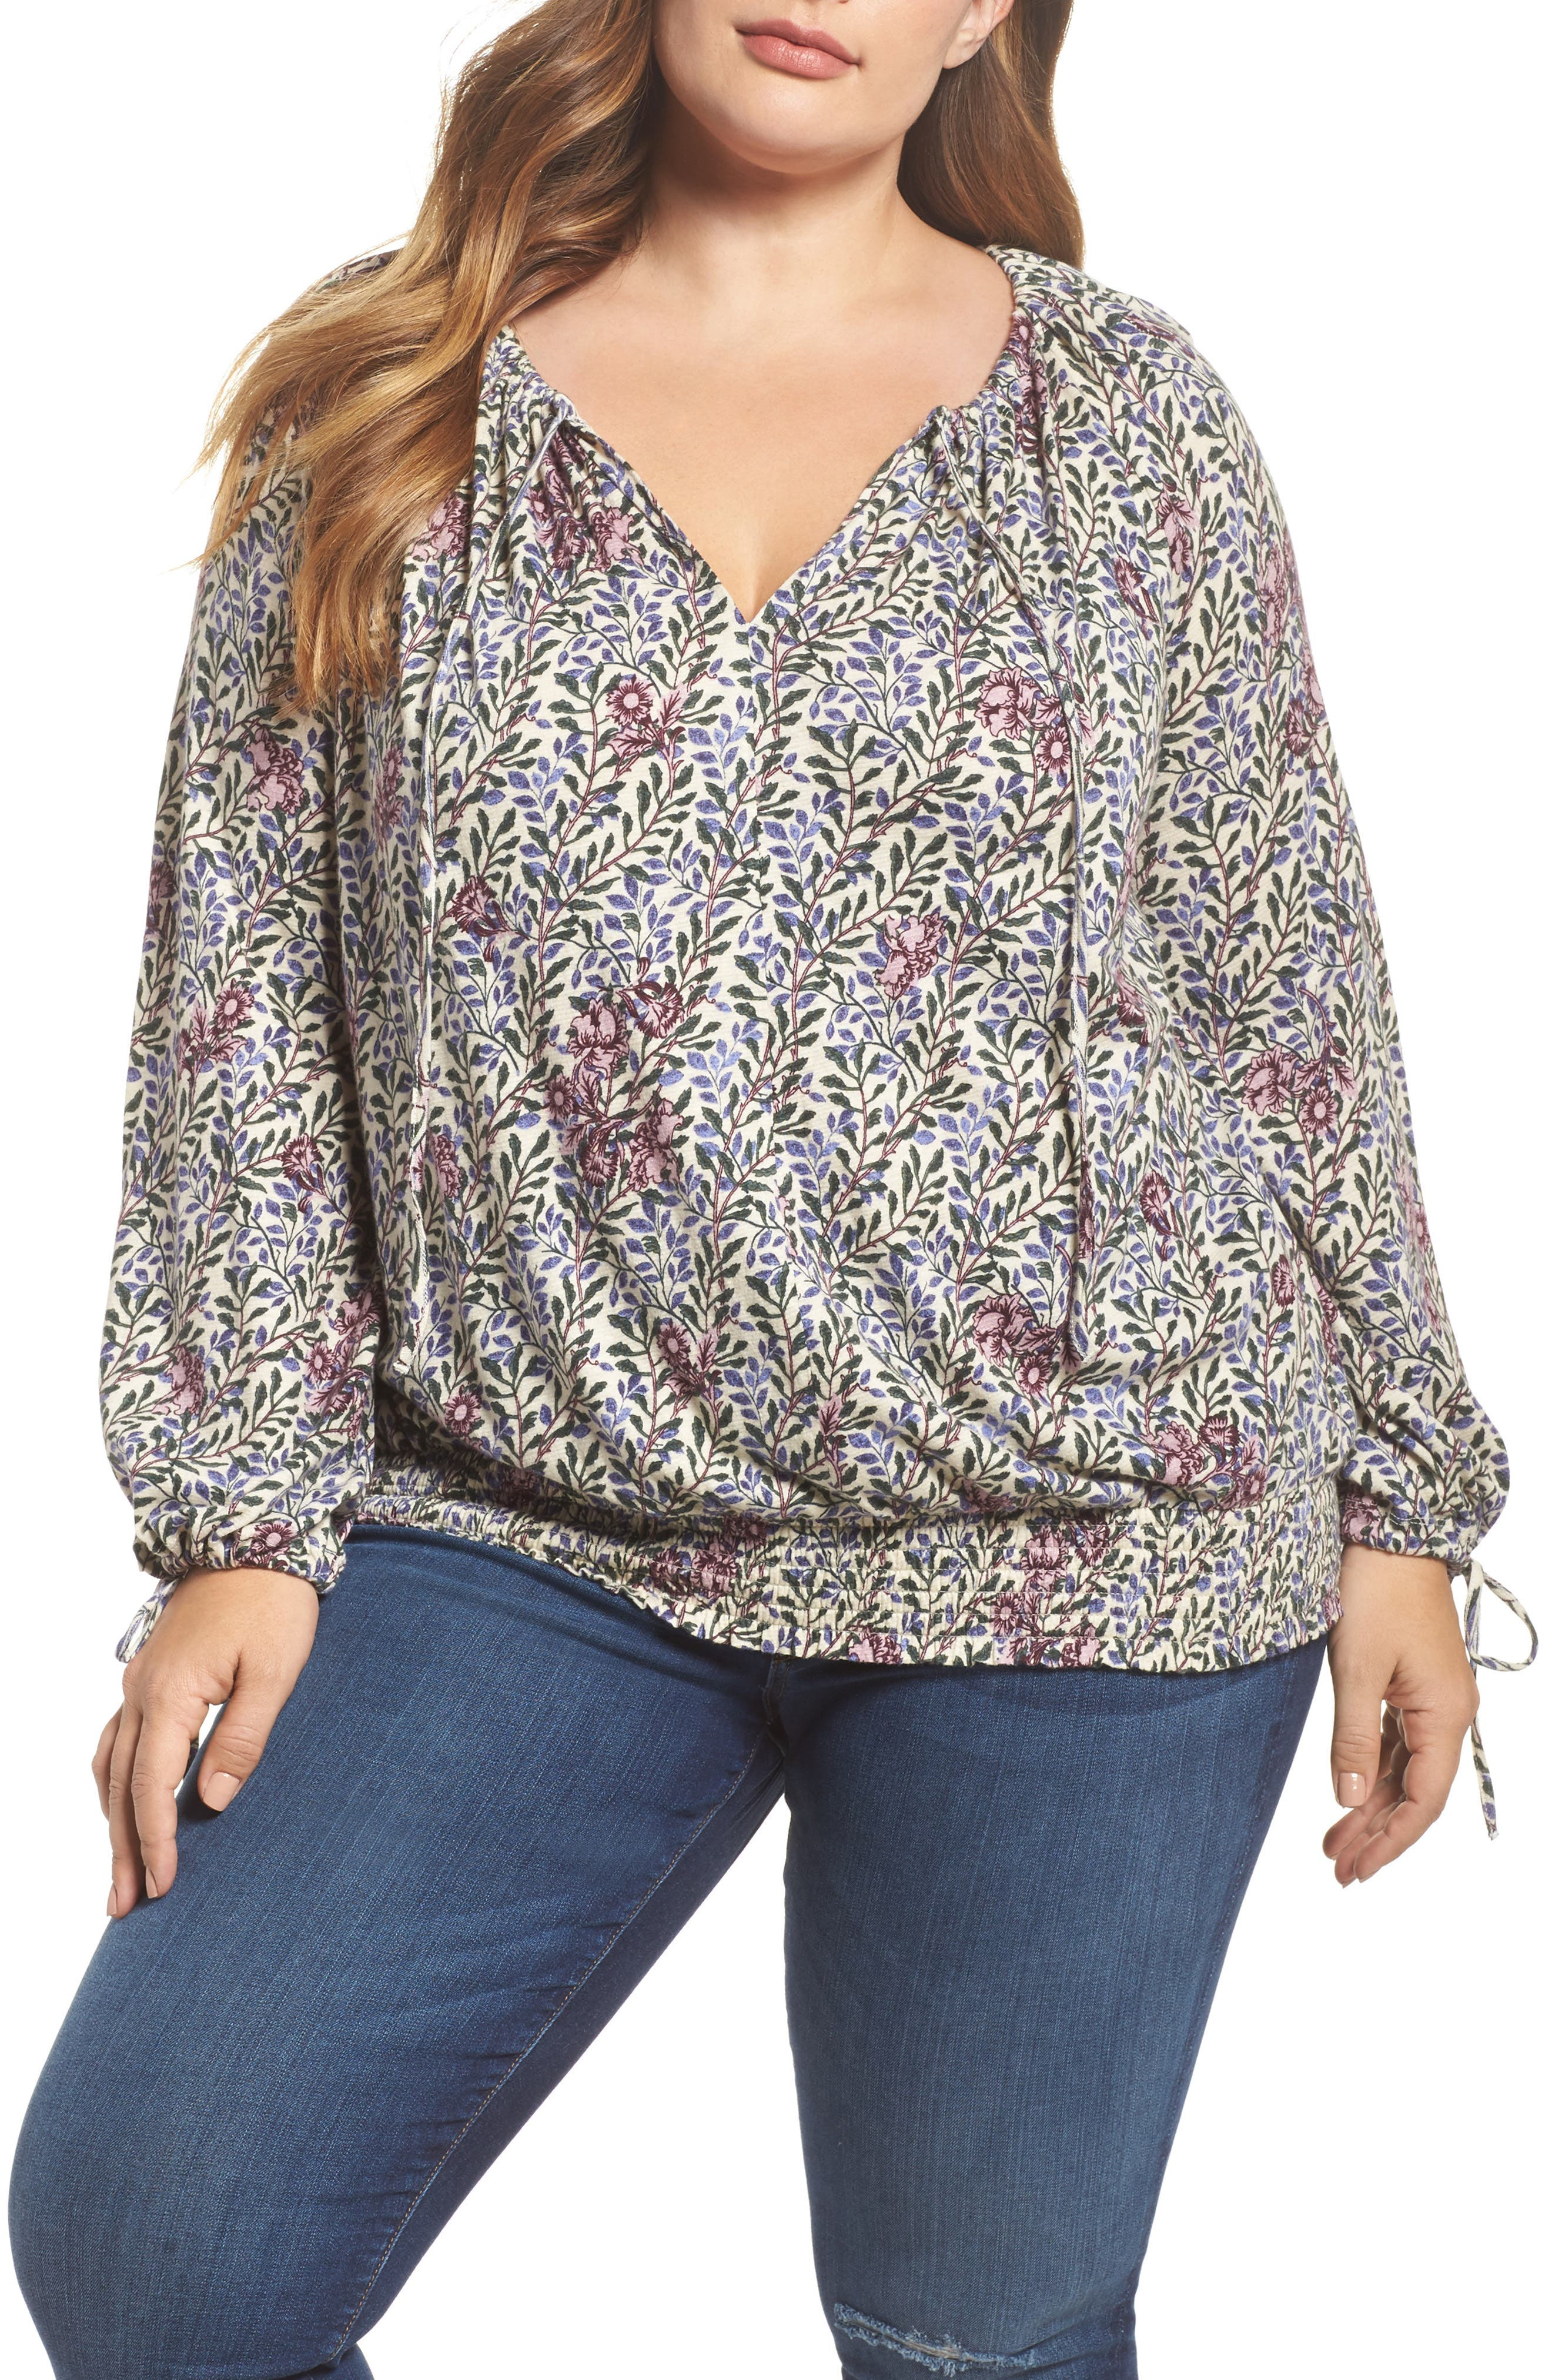 Alternate Image 1 Selected - Lucky Brand Print Smocked Peasant Top (Plus Size)